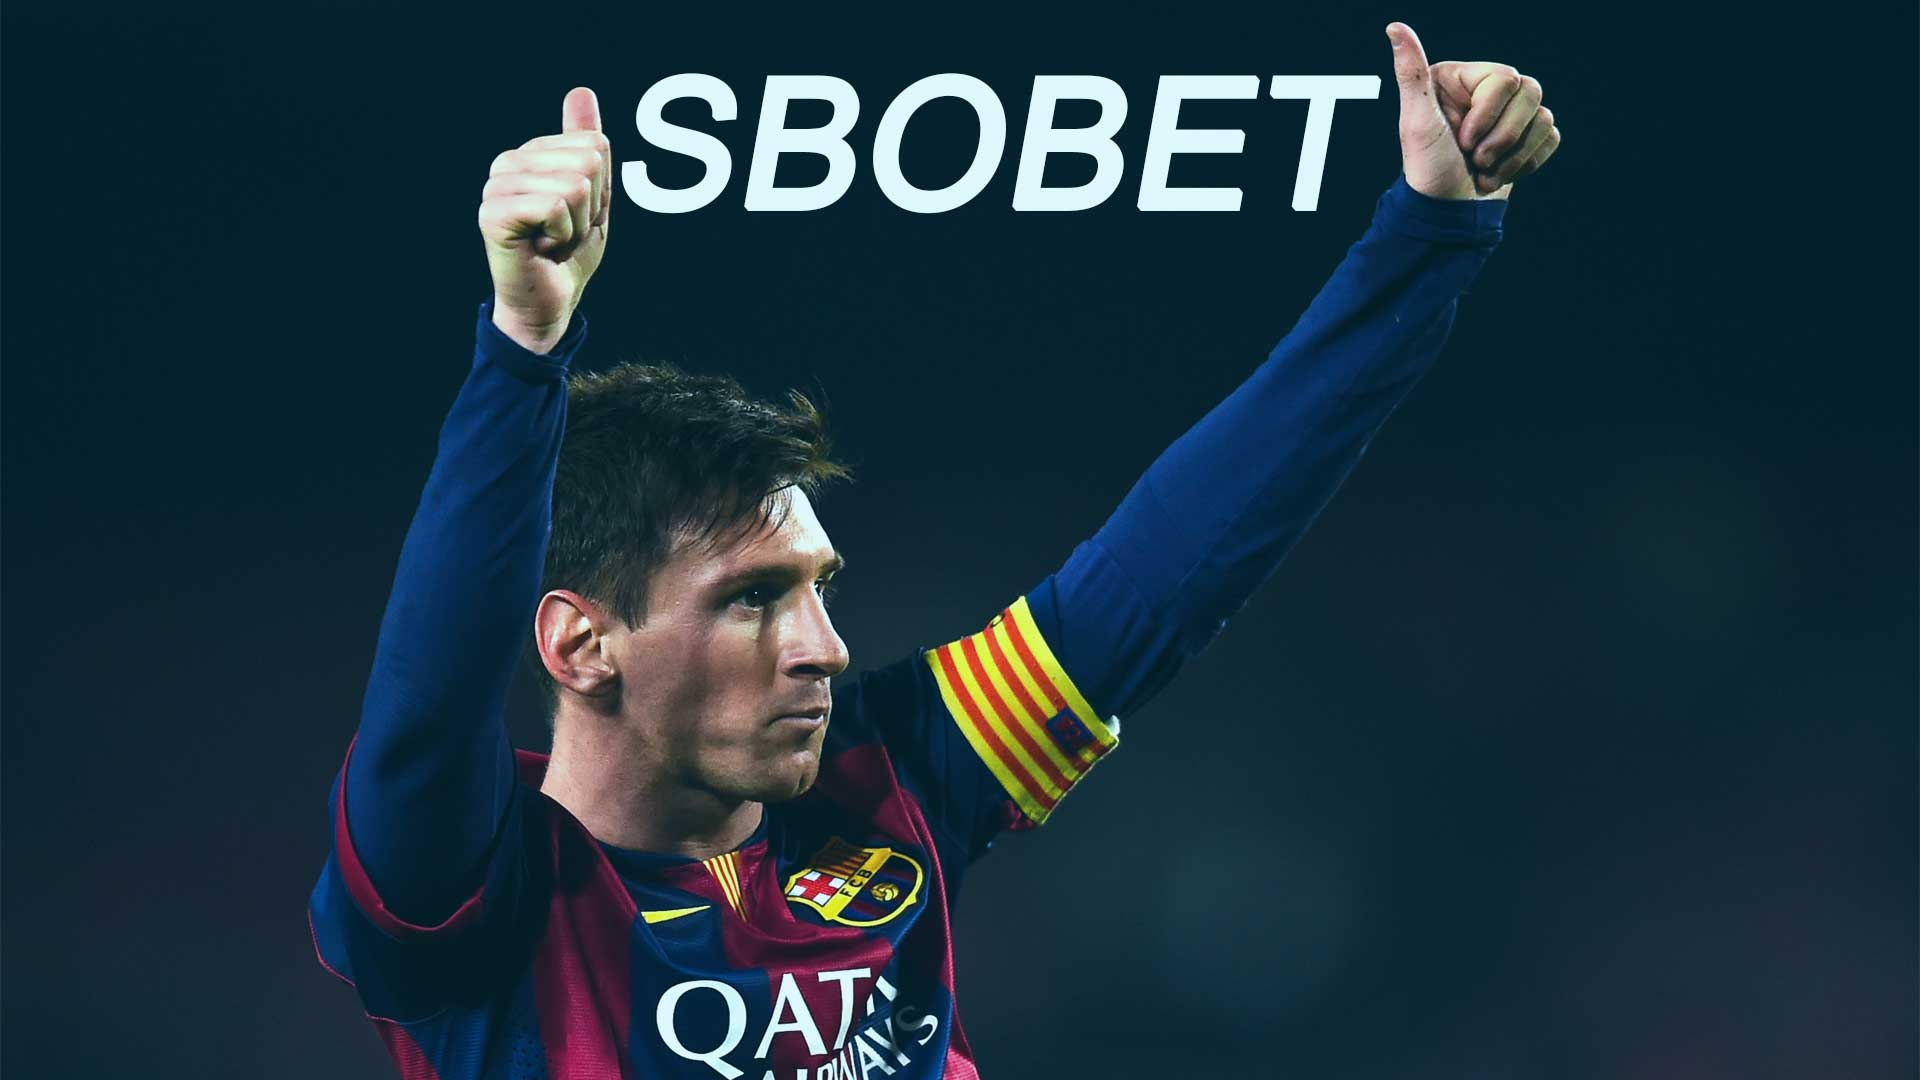 sbobet wallpaper